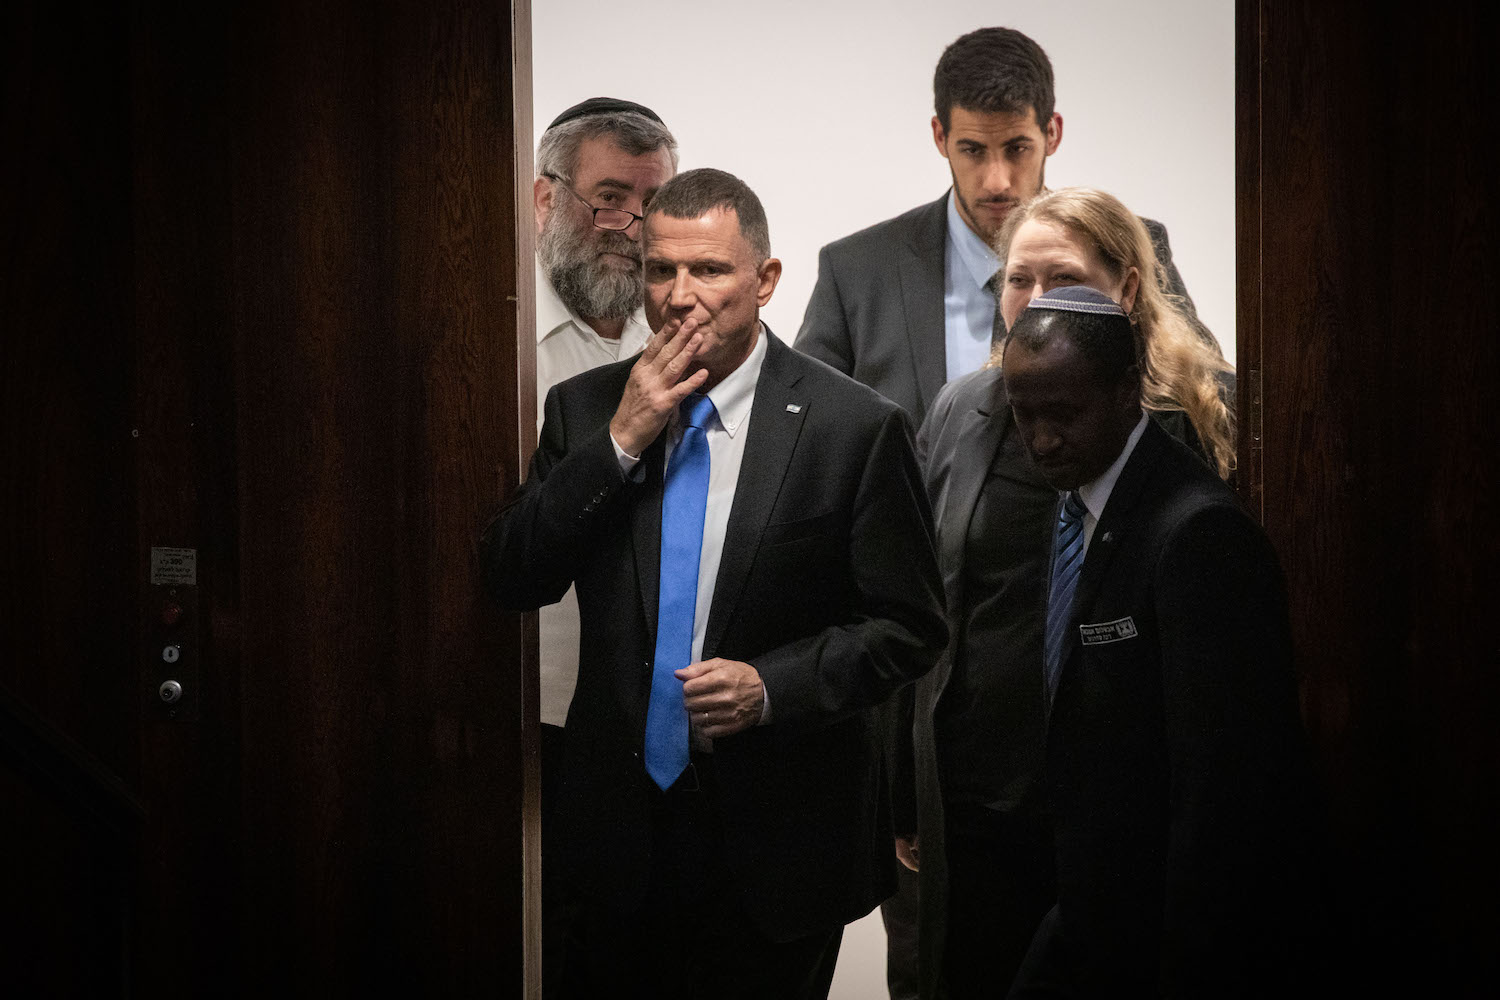 Speaker of the Knesset Yuli Edelstein seen during a vote on a bill to dissolve the parliament, December 11, 2019. (Hadas Parush/Flash90)